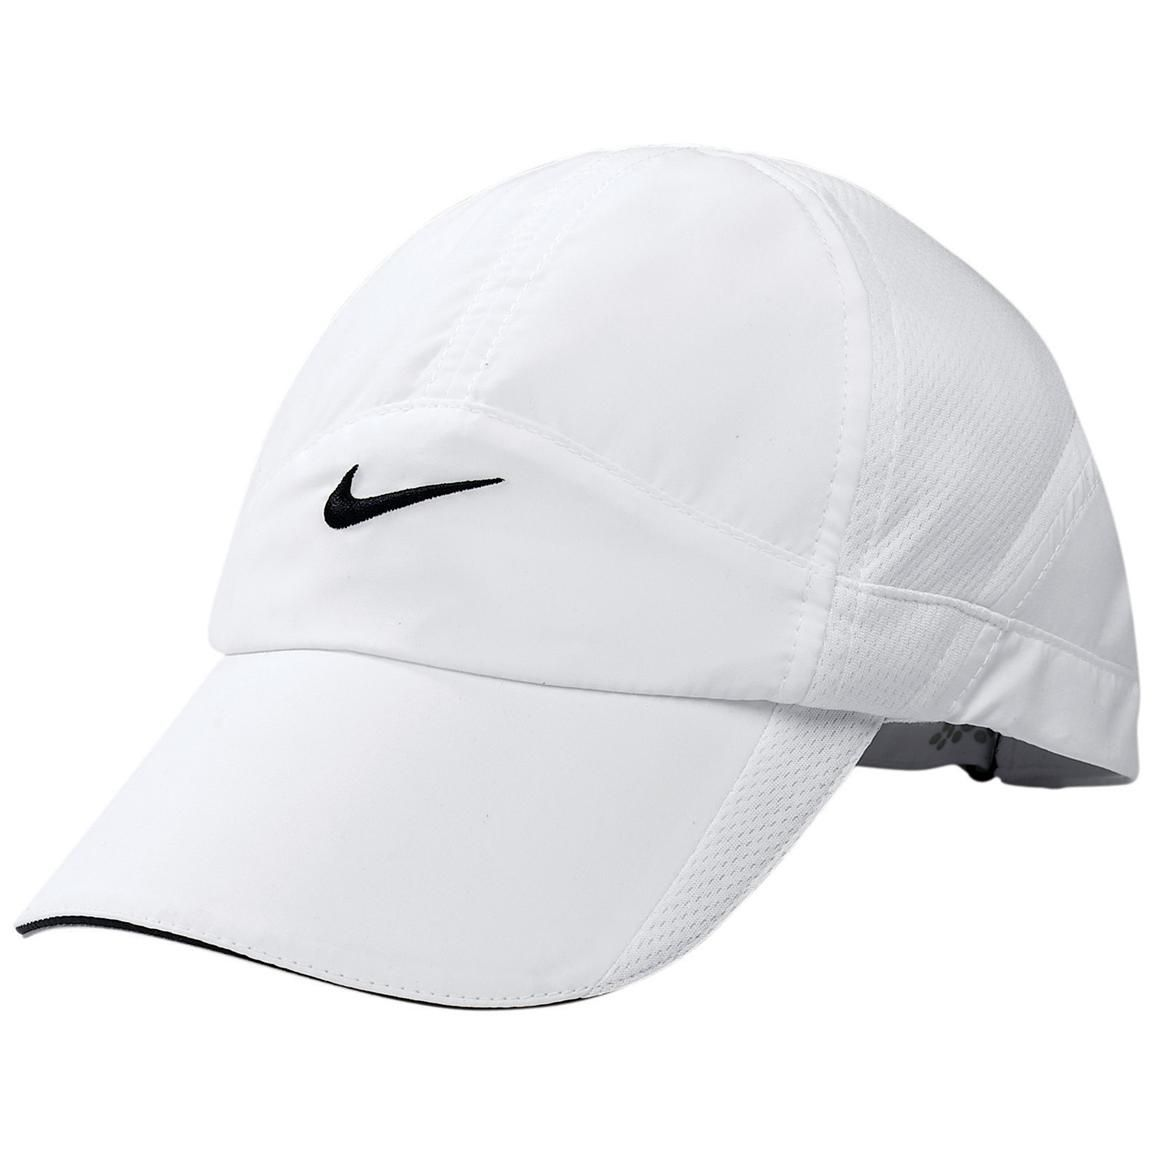 43721d9e554e8 Nike Hats for Women | Women's Nike® Feather Light Cap White | Hats ...